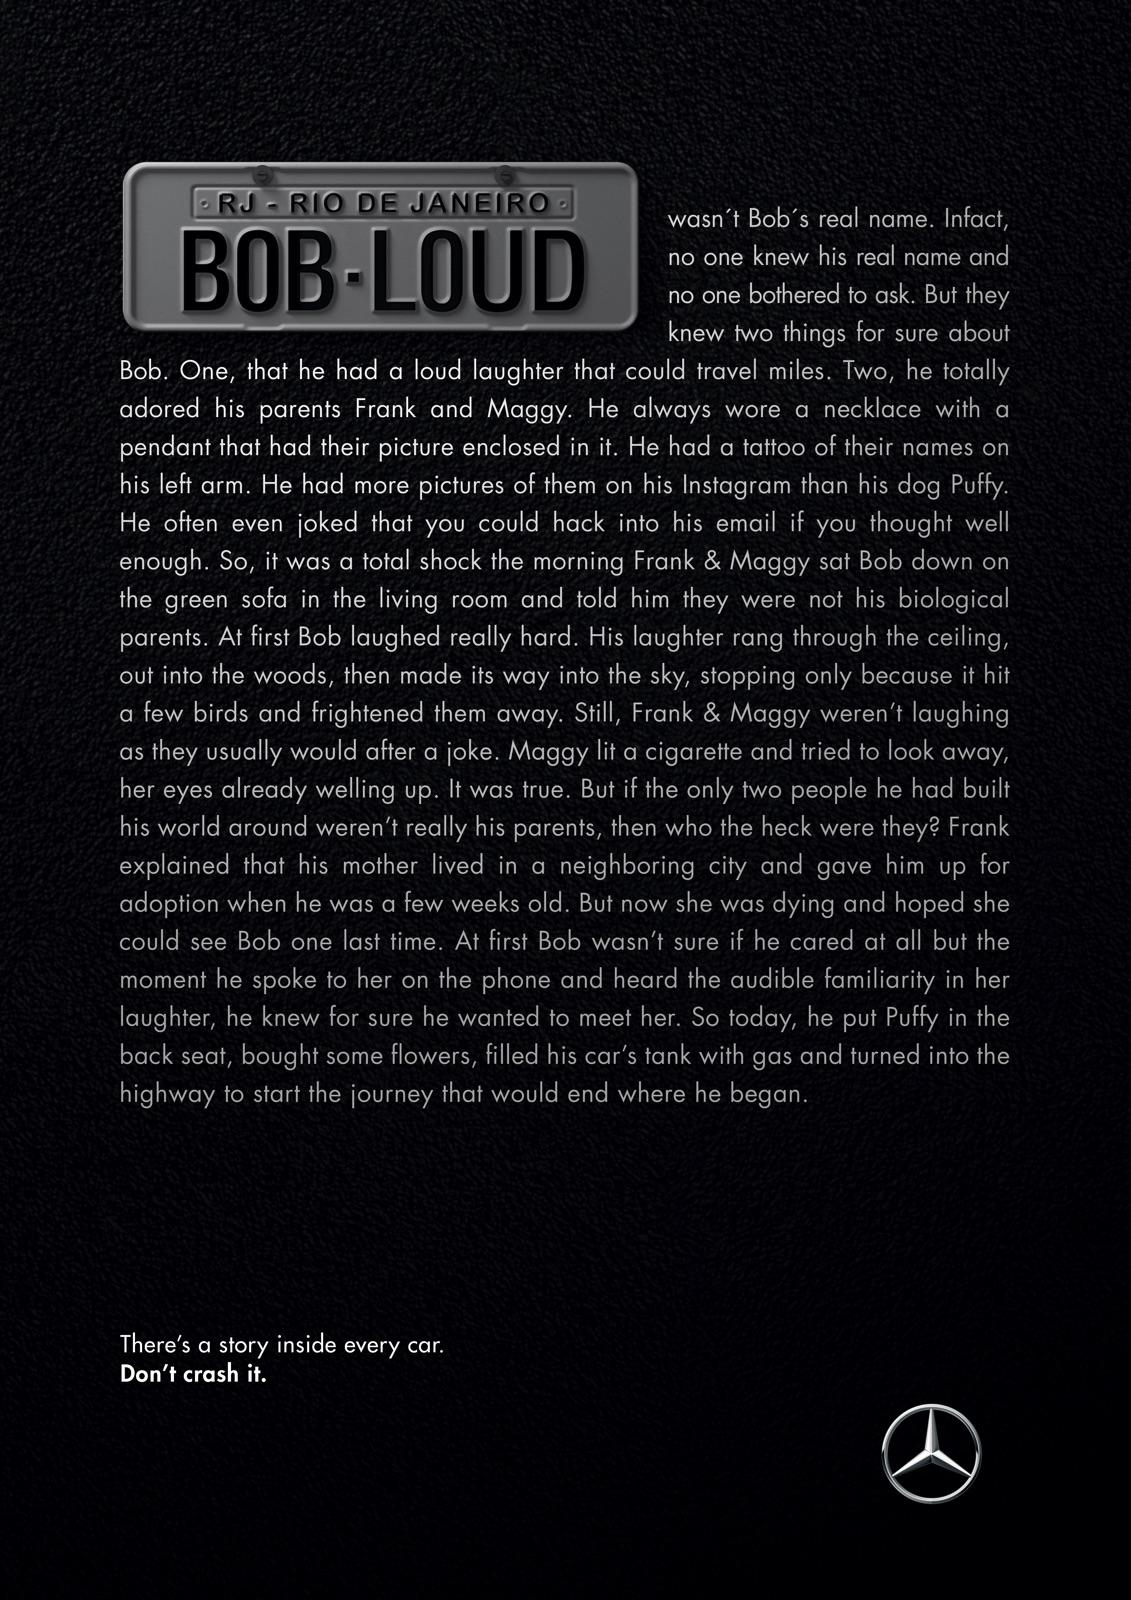 Mercedes: Road Story - Bob Loud